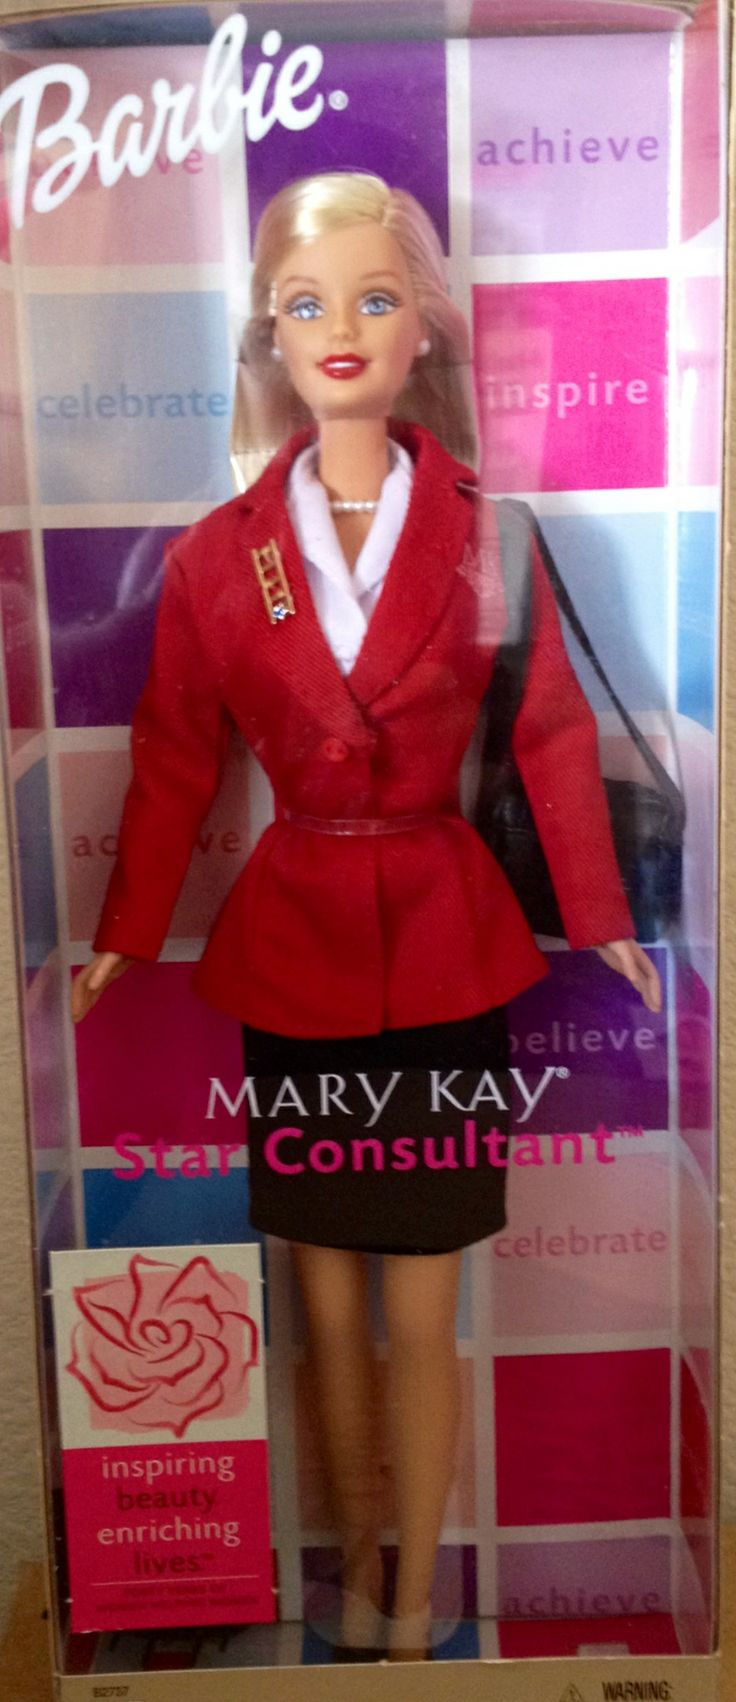 """Mary Kay Cosmetics - a Star Consultant Barbie who's earned her Red Jacket to match her makeup, nail polish, and lipstick! Today is National Girlfriends Day, and what could be a better way to celebrate than with a Mary Kay® party? """"Like"""" this post if you'll be sharing stories and swapping beauty secrets with your best girlfriends!   http://www.marykay.com/ms1roberts"""